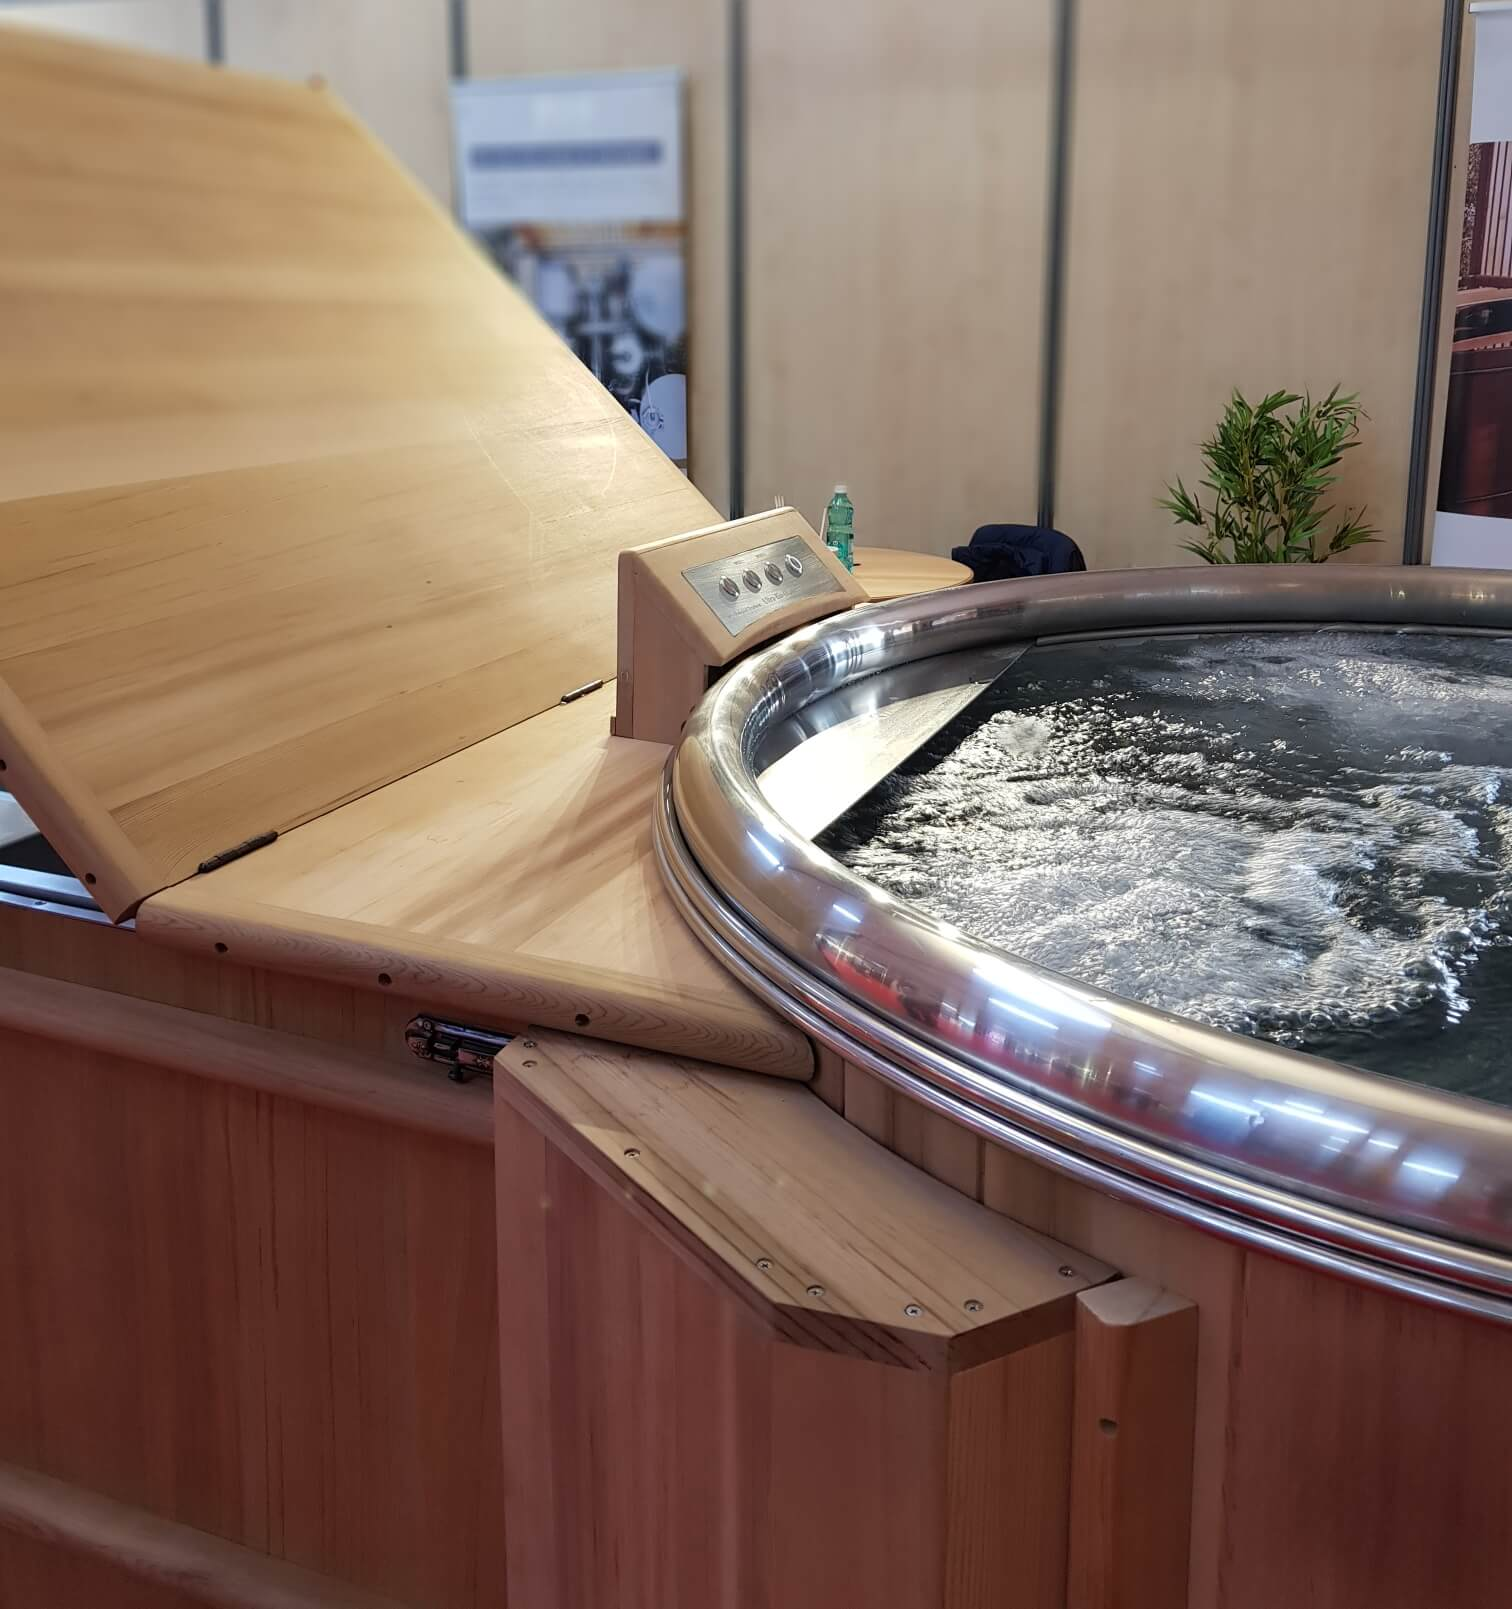 Stainless steel Hot tub, installation bain nordique storvatt, installation bain nordique, installation spa